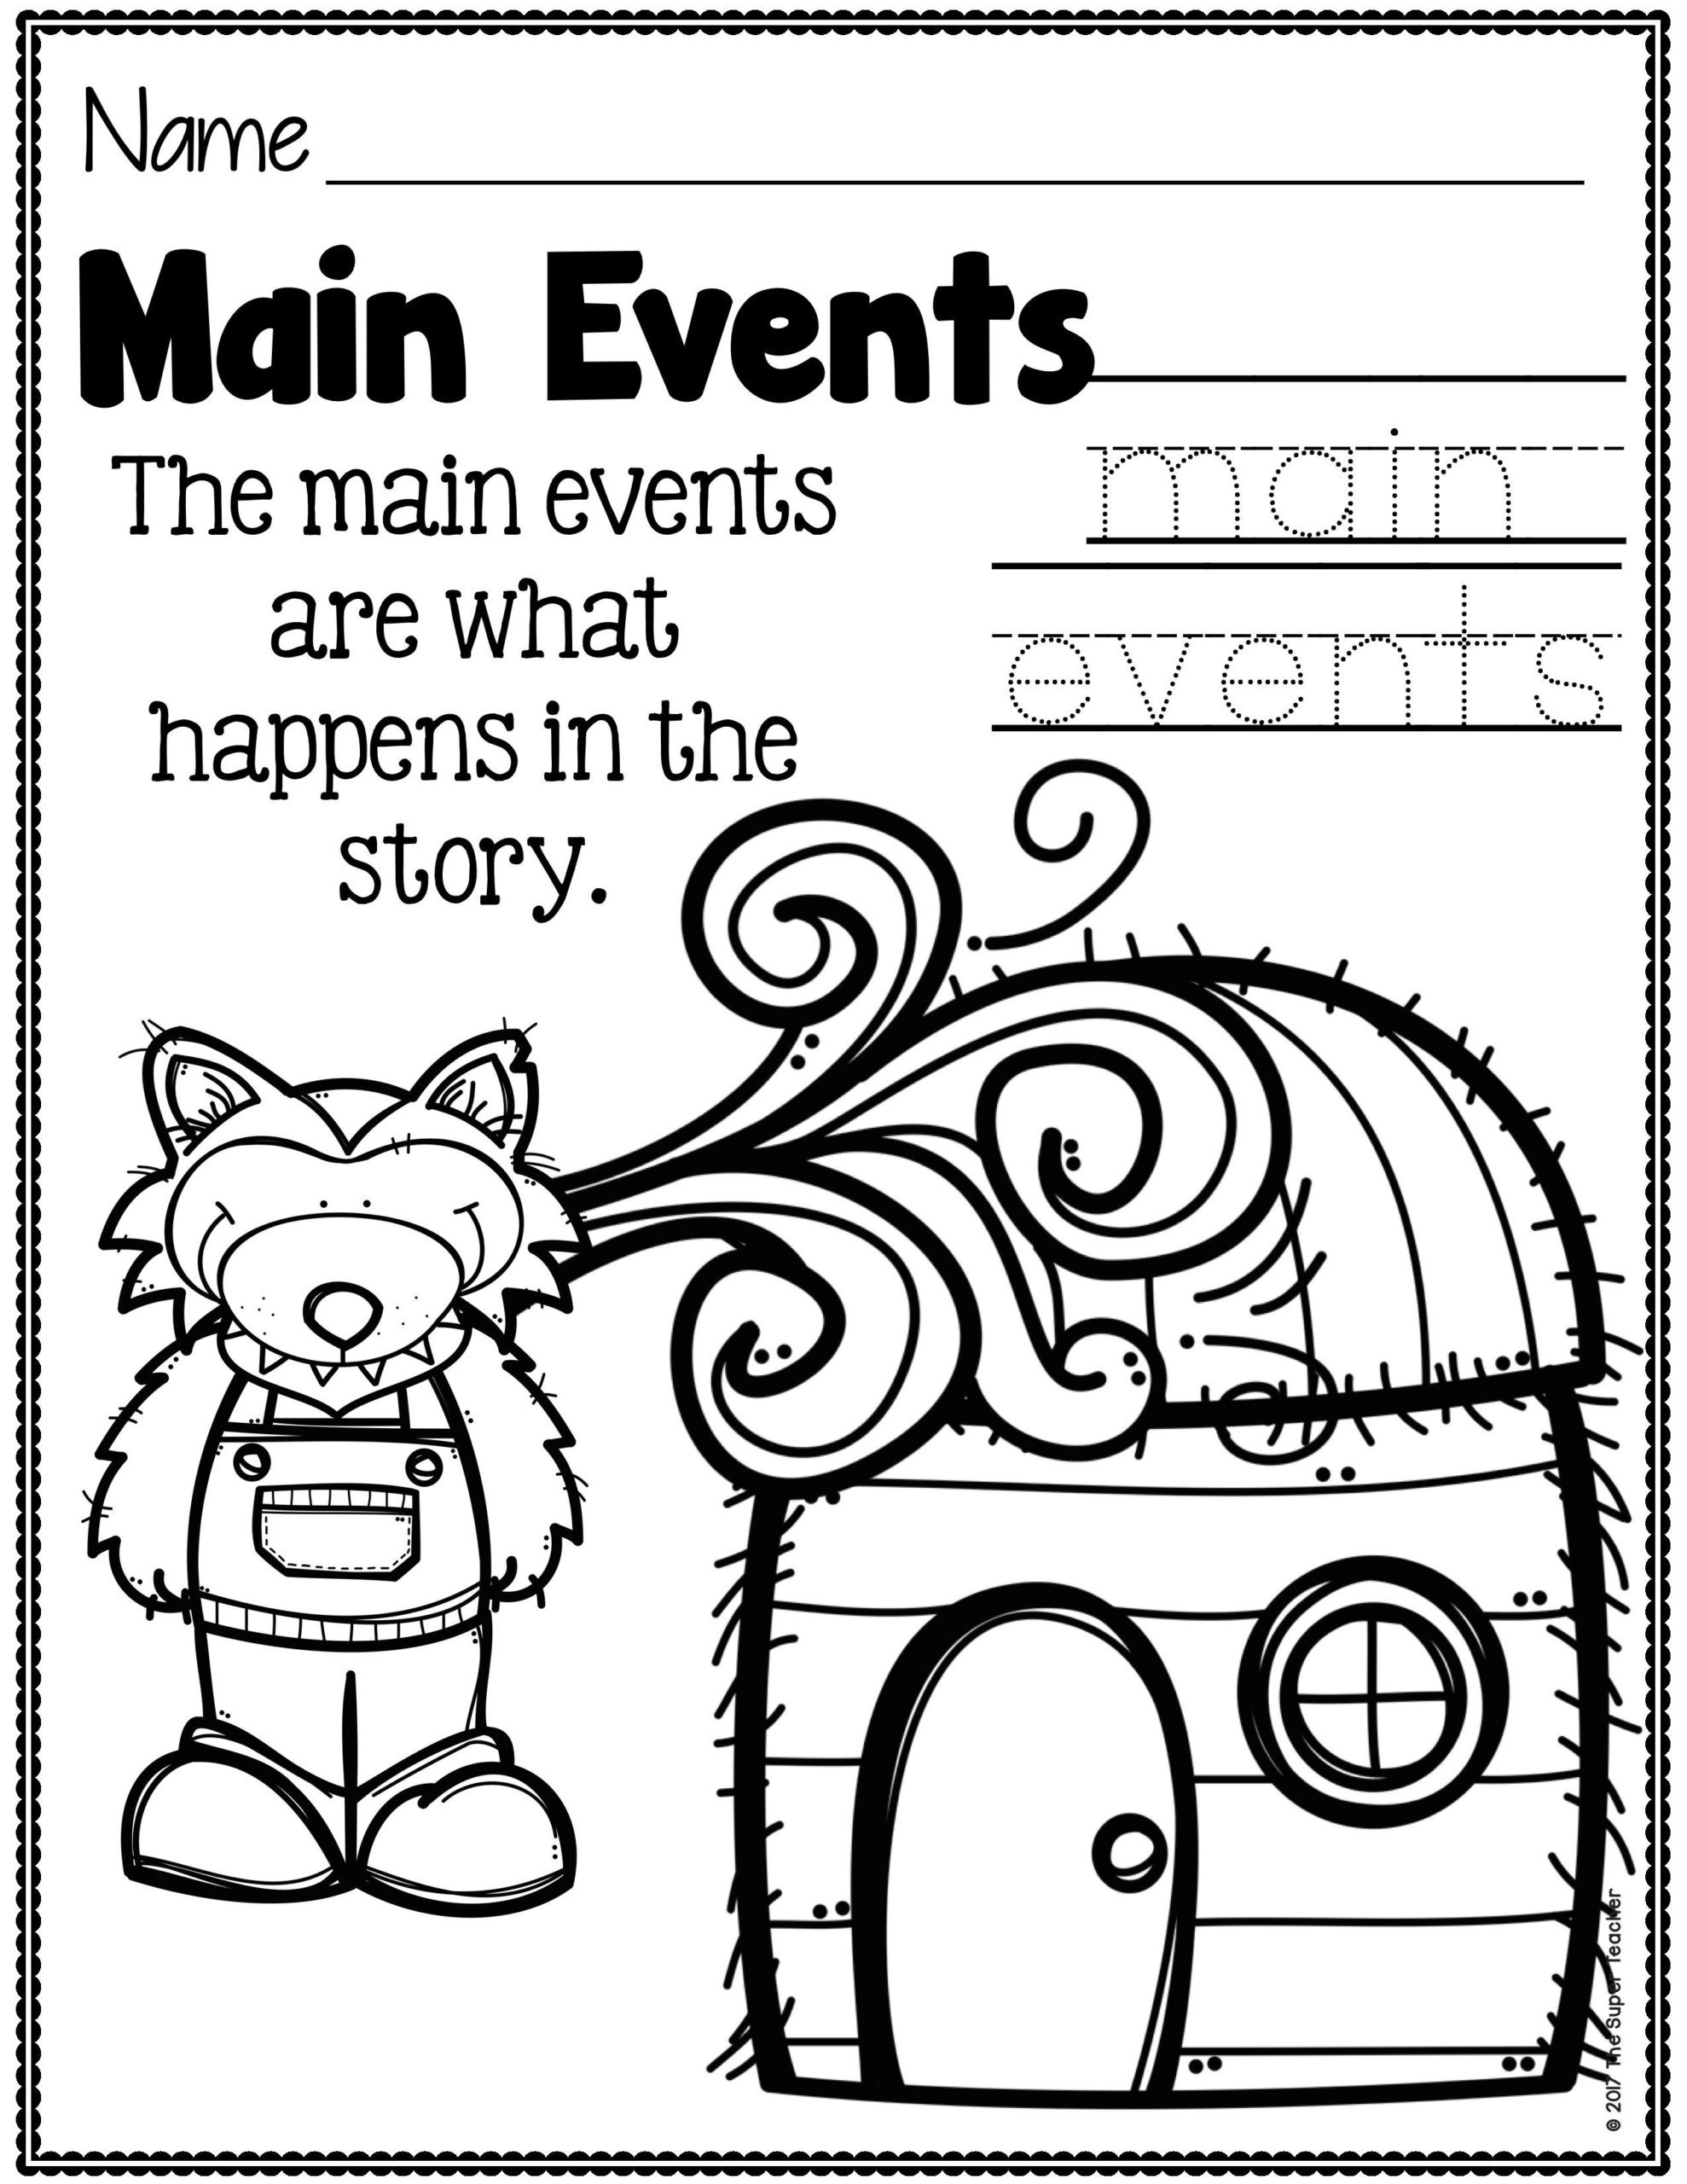 Mammals Worksheet First Grade Elements Made Practical and Fun with Familiar Characters